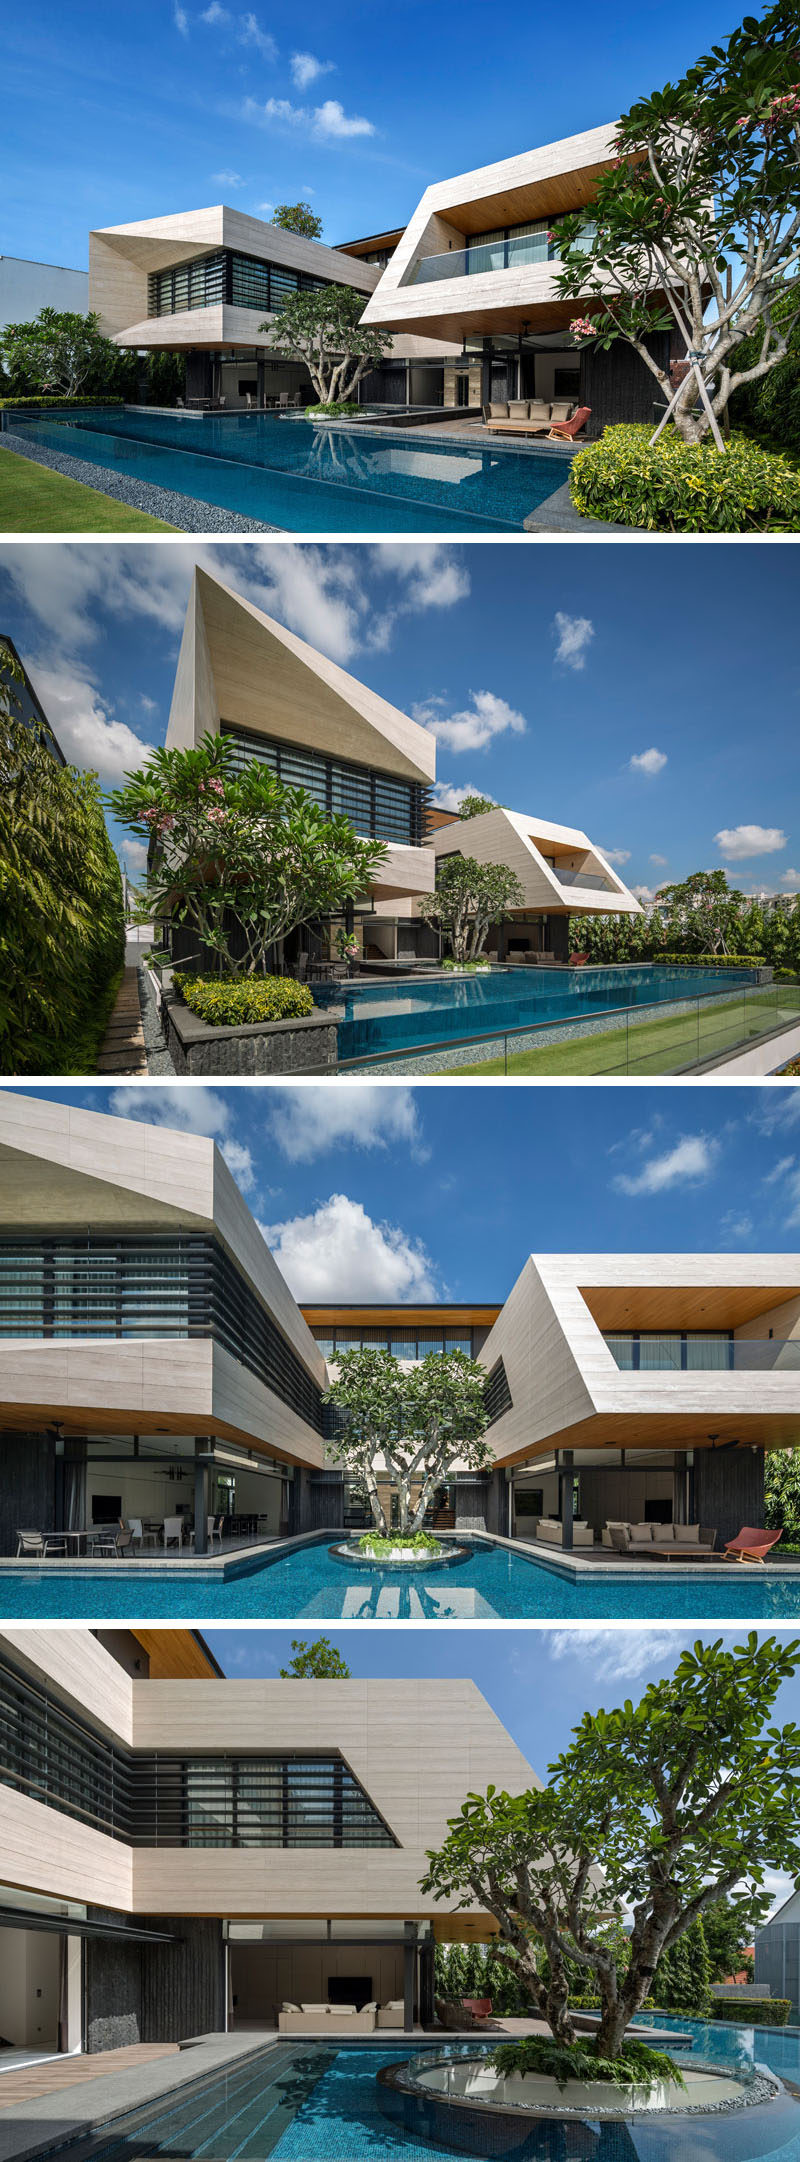 This modern house has a large pool with a single Frangipani tree floating in the swimming pool, and the floating planter allows daylight and natural ventilation to the garage below. #SwimmingPool #Landscaping